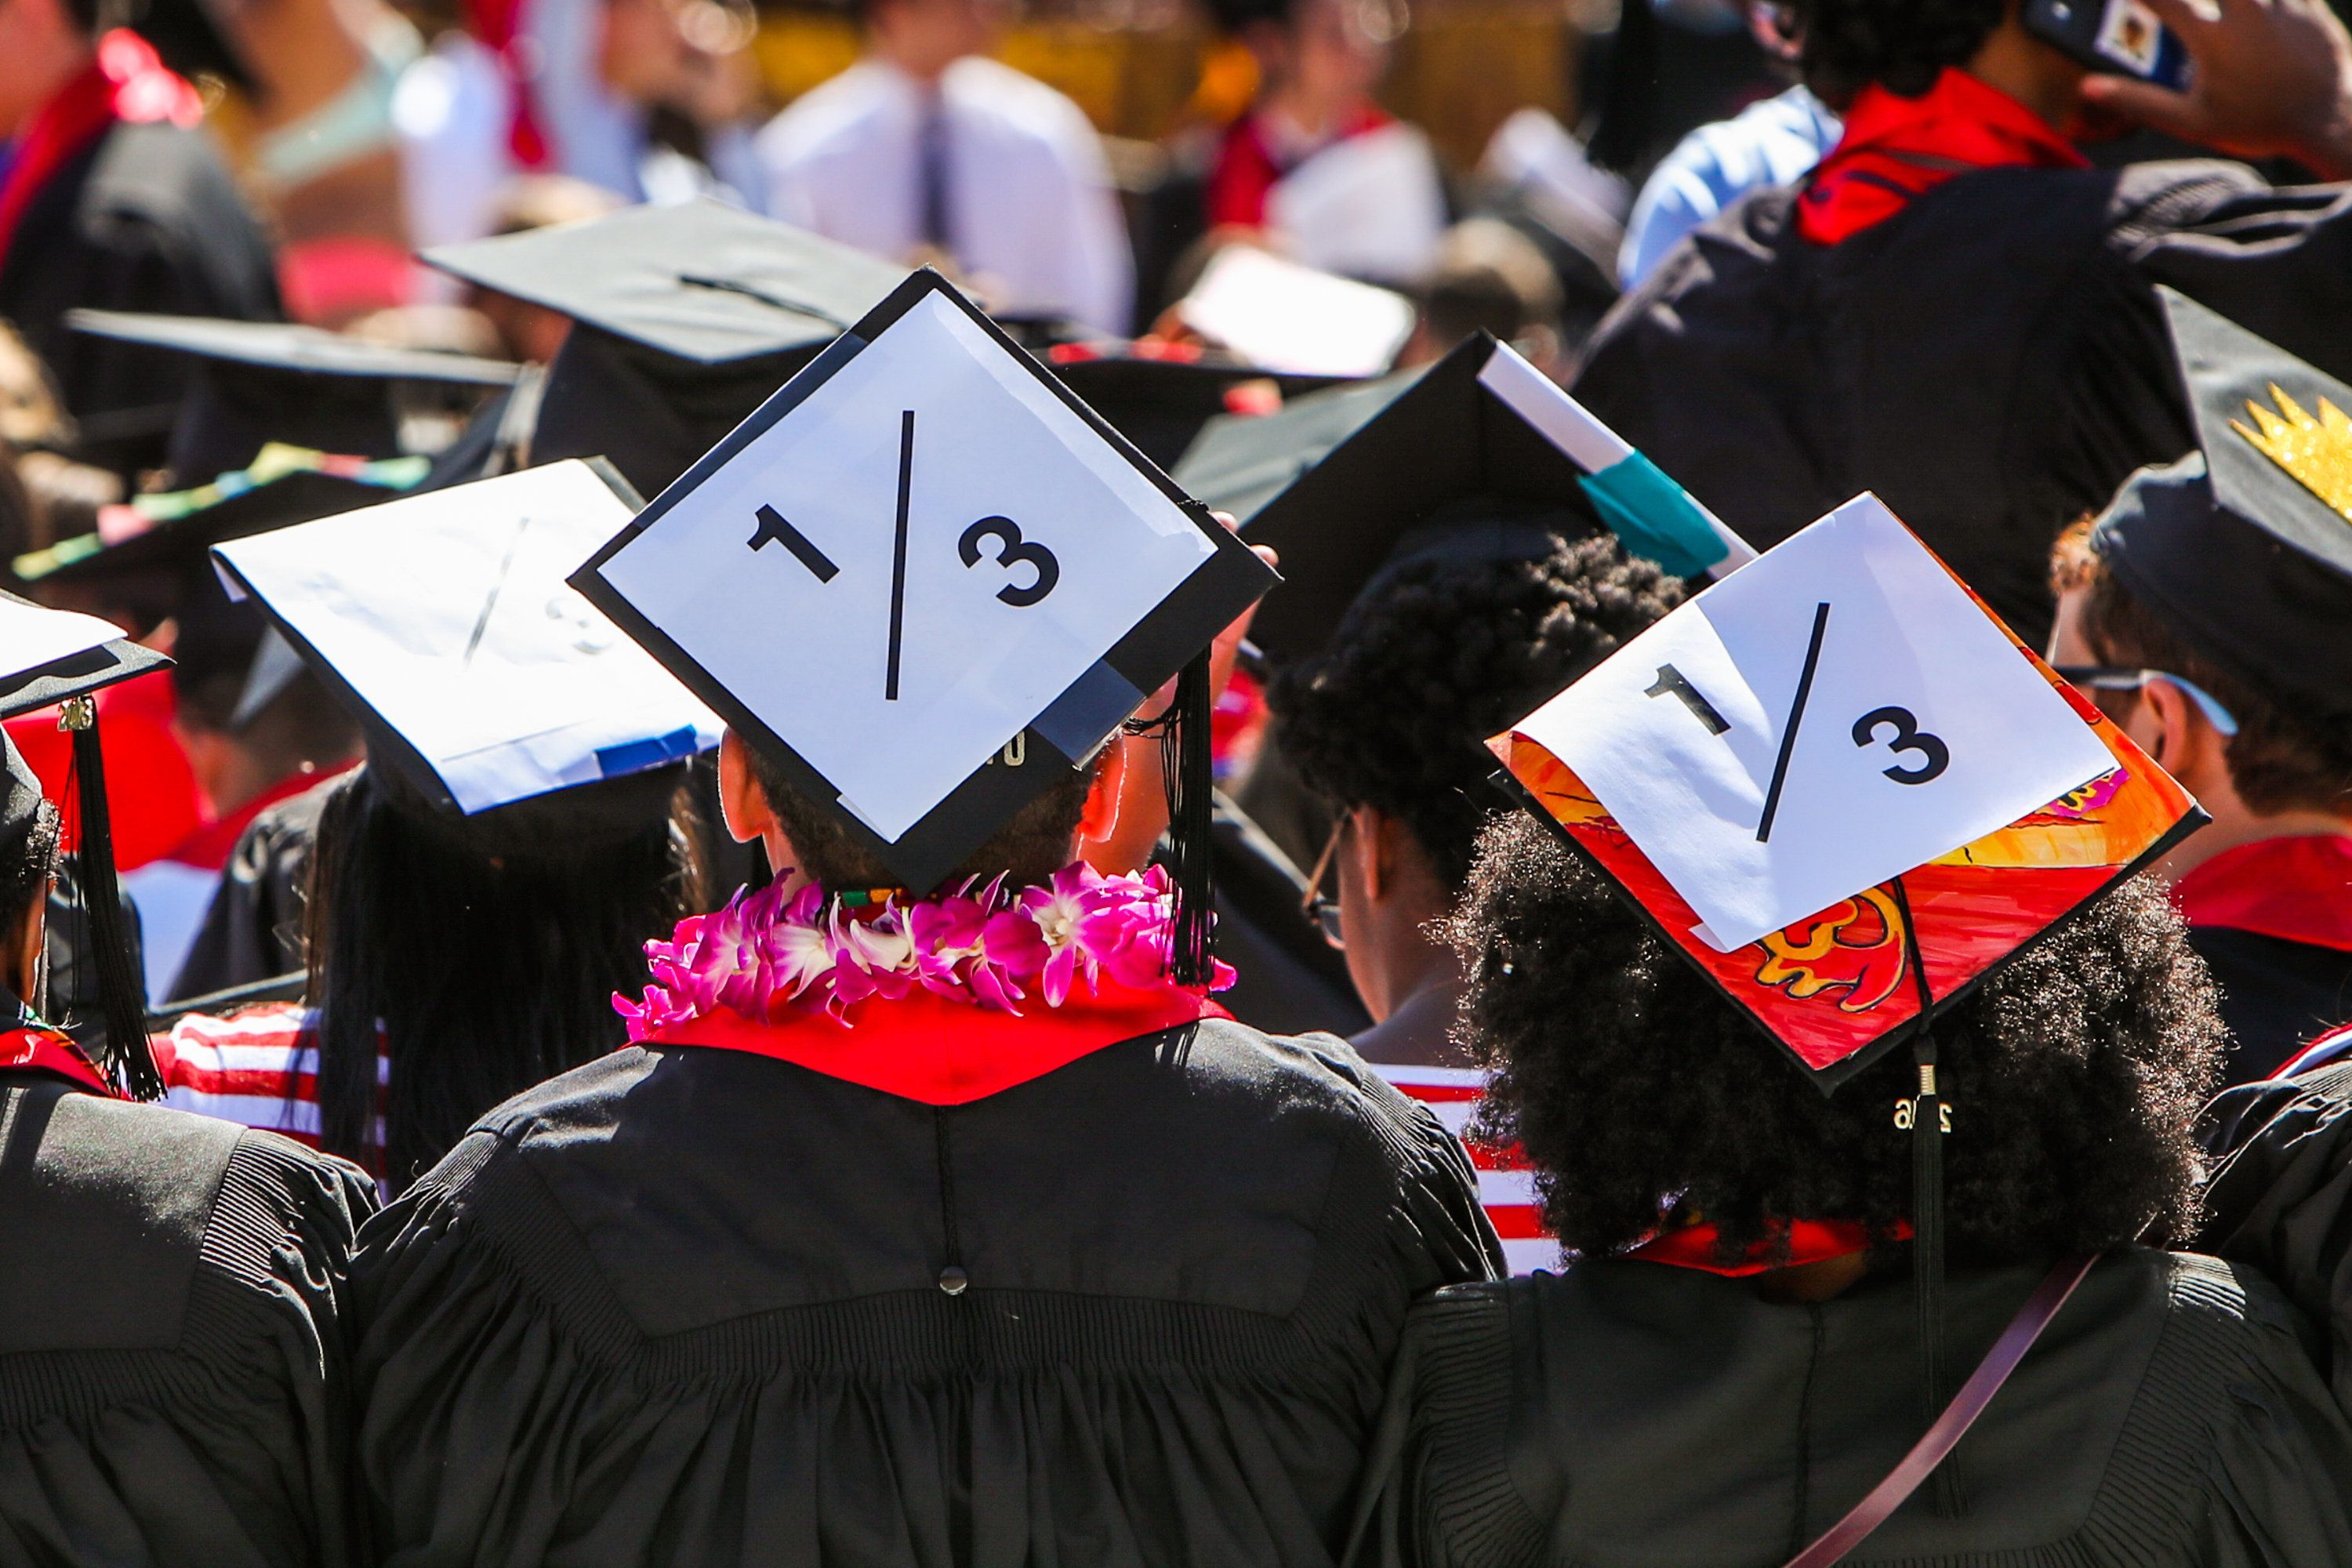 Stanford students wear a 1/3 sign on their caps to show solidarity for a Stanford rape victim during graduation ceremonies at Stanford University, in Palo Alto, California, on June 12, 2016.   The 1/3 represents a statistic that claims one in three students will experience a sexual assault by the time they graduate college. Stanford students are protesting the universitys handling of rape cases alledging that the campus keeps secret the names of students found to be responsible for sexual assault and misconduct. / AFP / GABRIELLE LURIE        (Photo credit should read GABRIELLE LURIE/AFP/Getty Images)